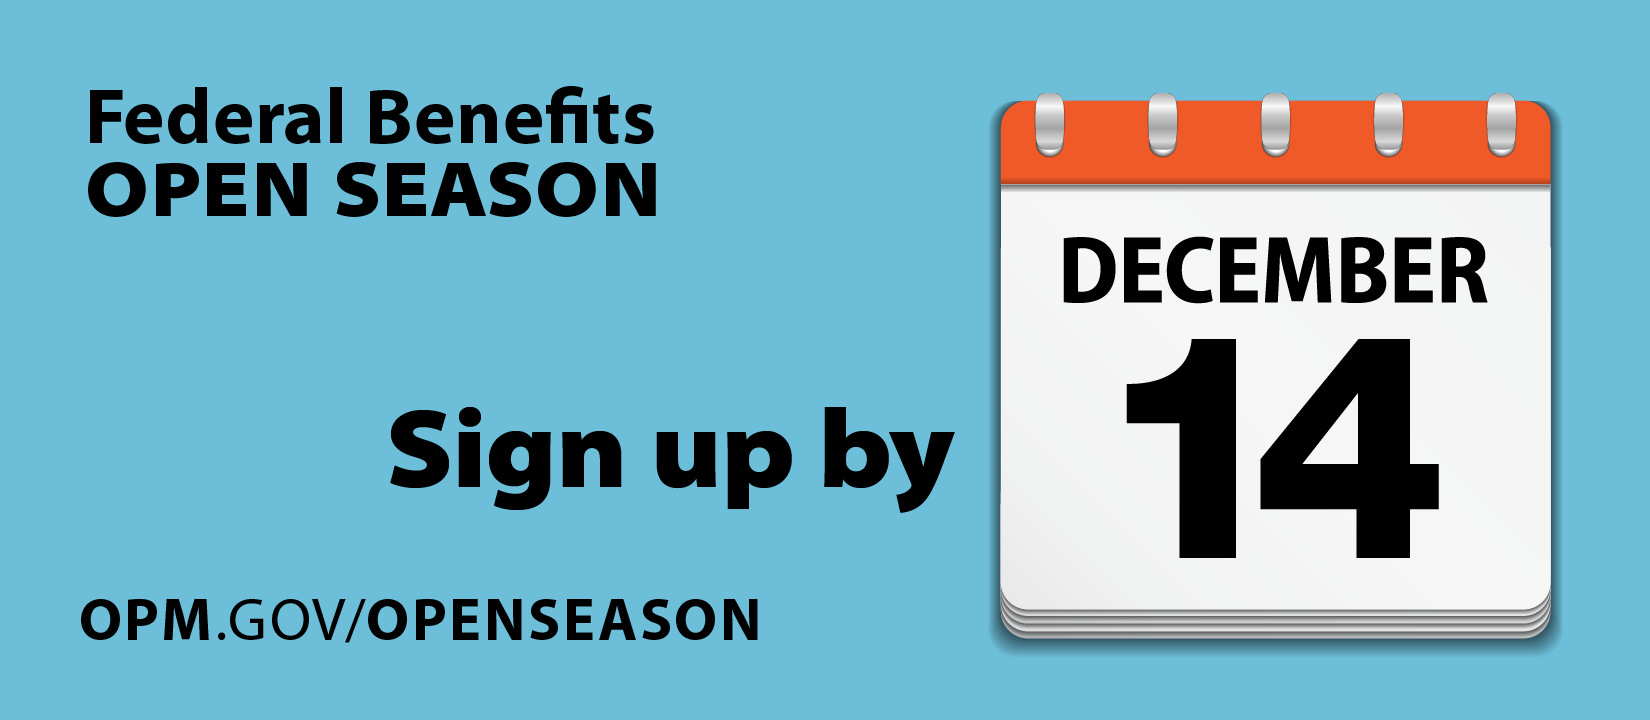 Federal Benefits Open Season. Sign up by December 14. opm.gov/openseason